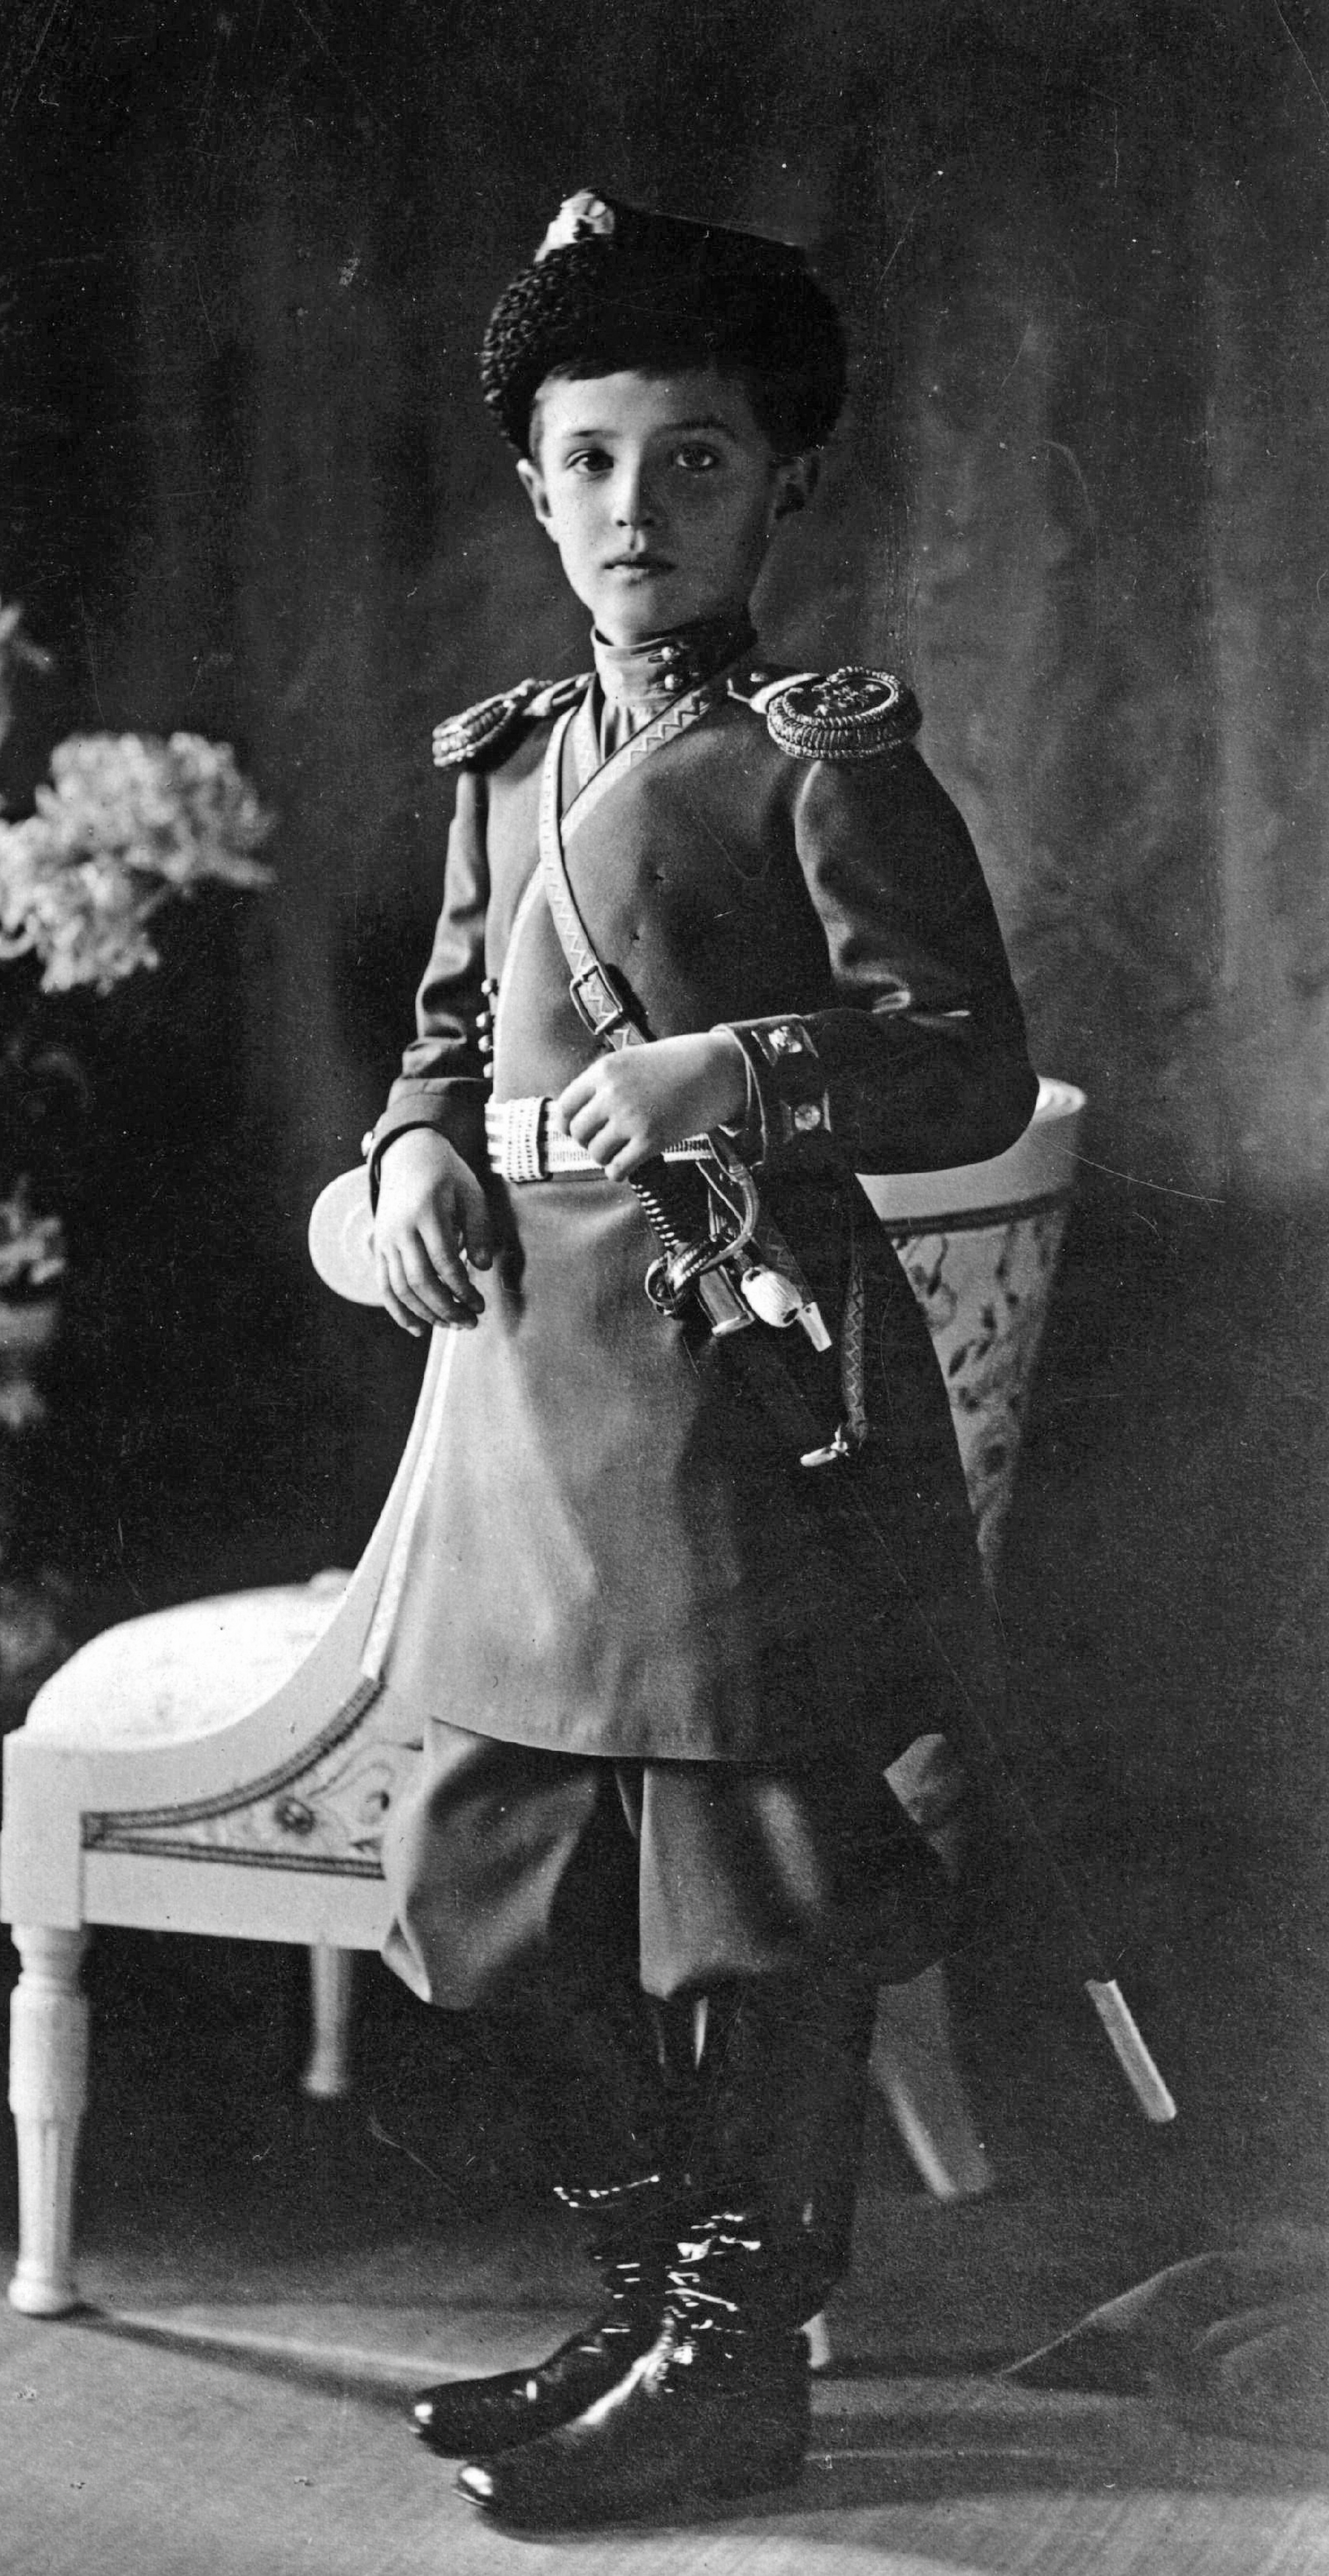 a biography of alexei nikolaevich romanov the tsesarevich of russia Alexei nikolaevich ( russian : алексе́й никола́евич ) (12 august 1904 [os 30 july] – 17 july 1918) of the house of romanov , was the tsarevich and heir apparent to the throne of the russian empire  he was the youngest child and only son of emperor nicholas ii and empress alexandra feodorovna  he was born with hemophilia  his mother's reliance on the faith healer.